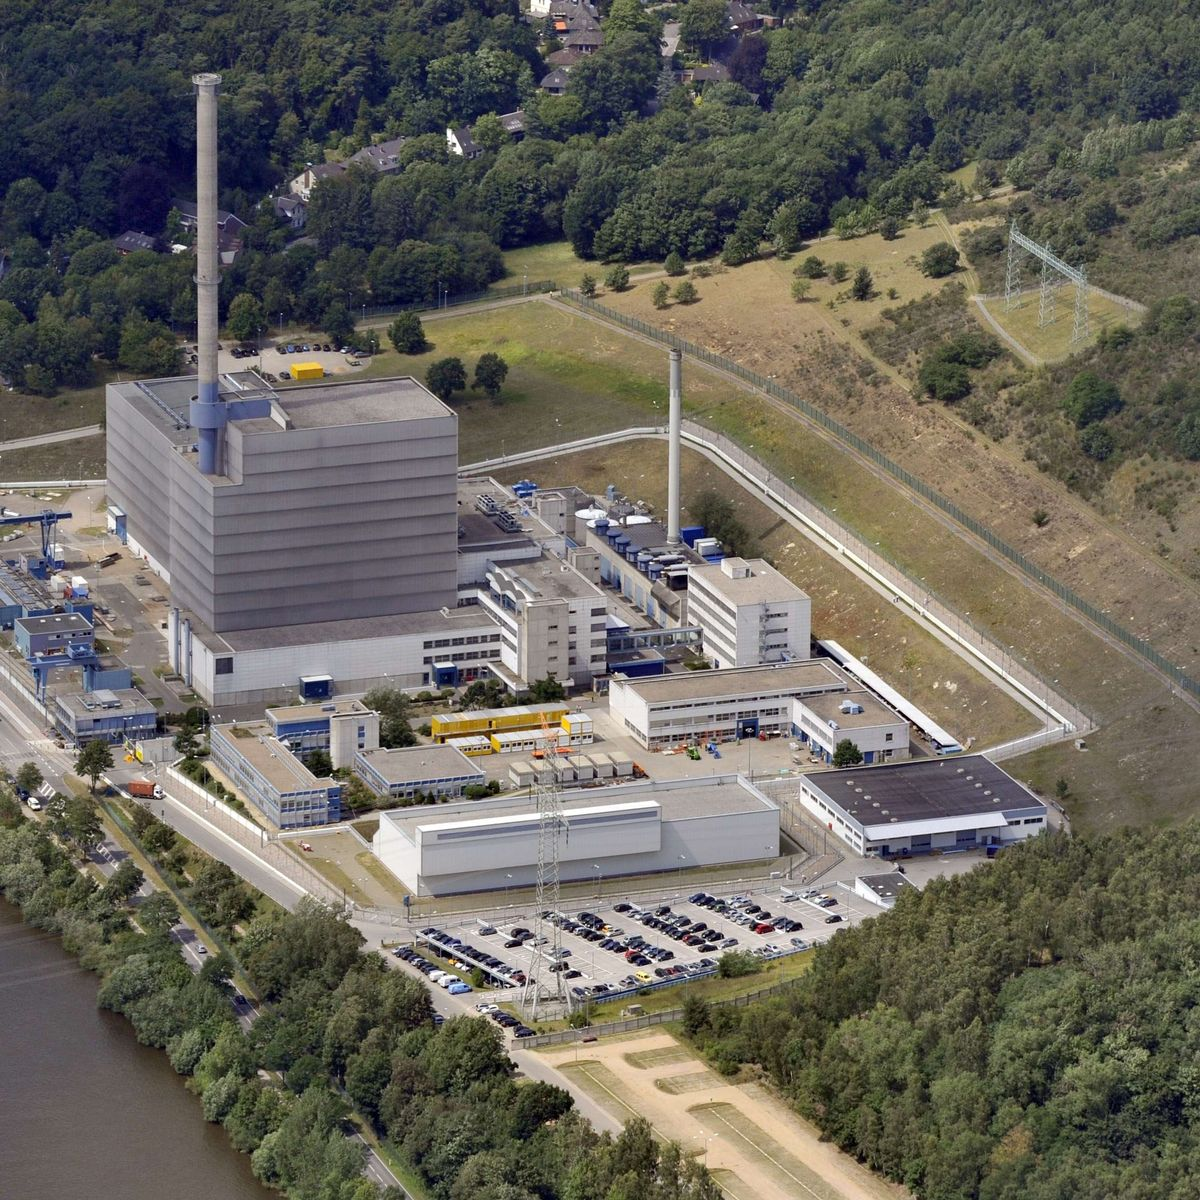 Vattenfall Vs Germany Nuclear Phase Out Faces Billion Euro